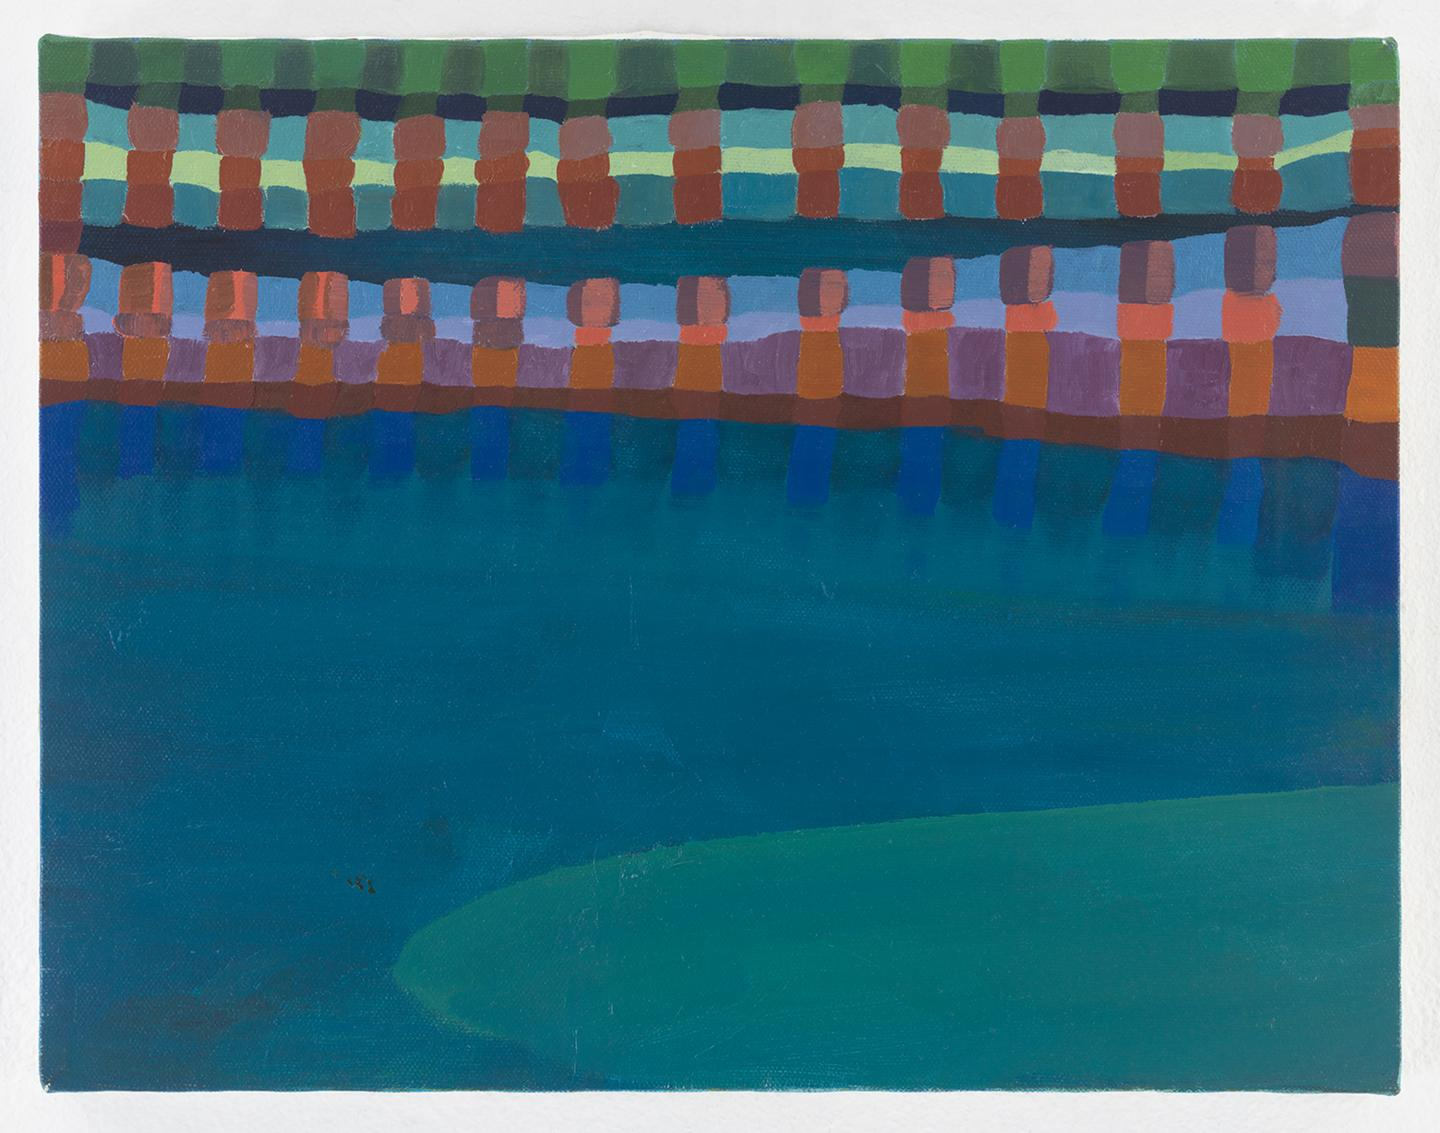 Ficre Ghebreyesus, Gate to the Blue, c.2002-07, acrylic on canvas, 27.9 x 35.6 cm). Courtesy: Galerie Lelong Co., New York.